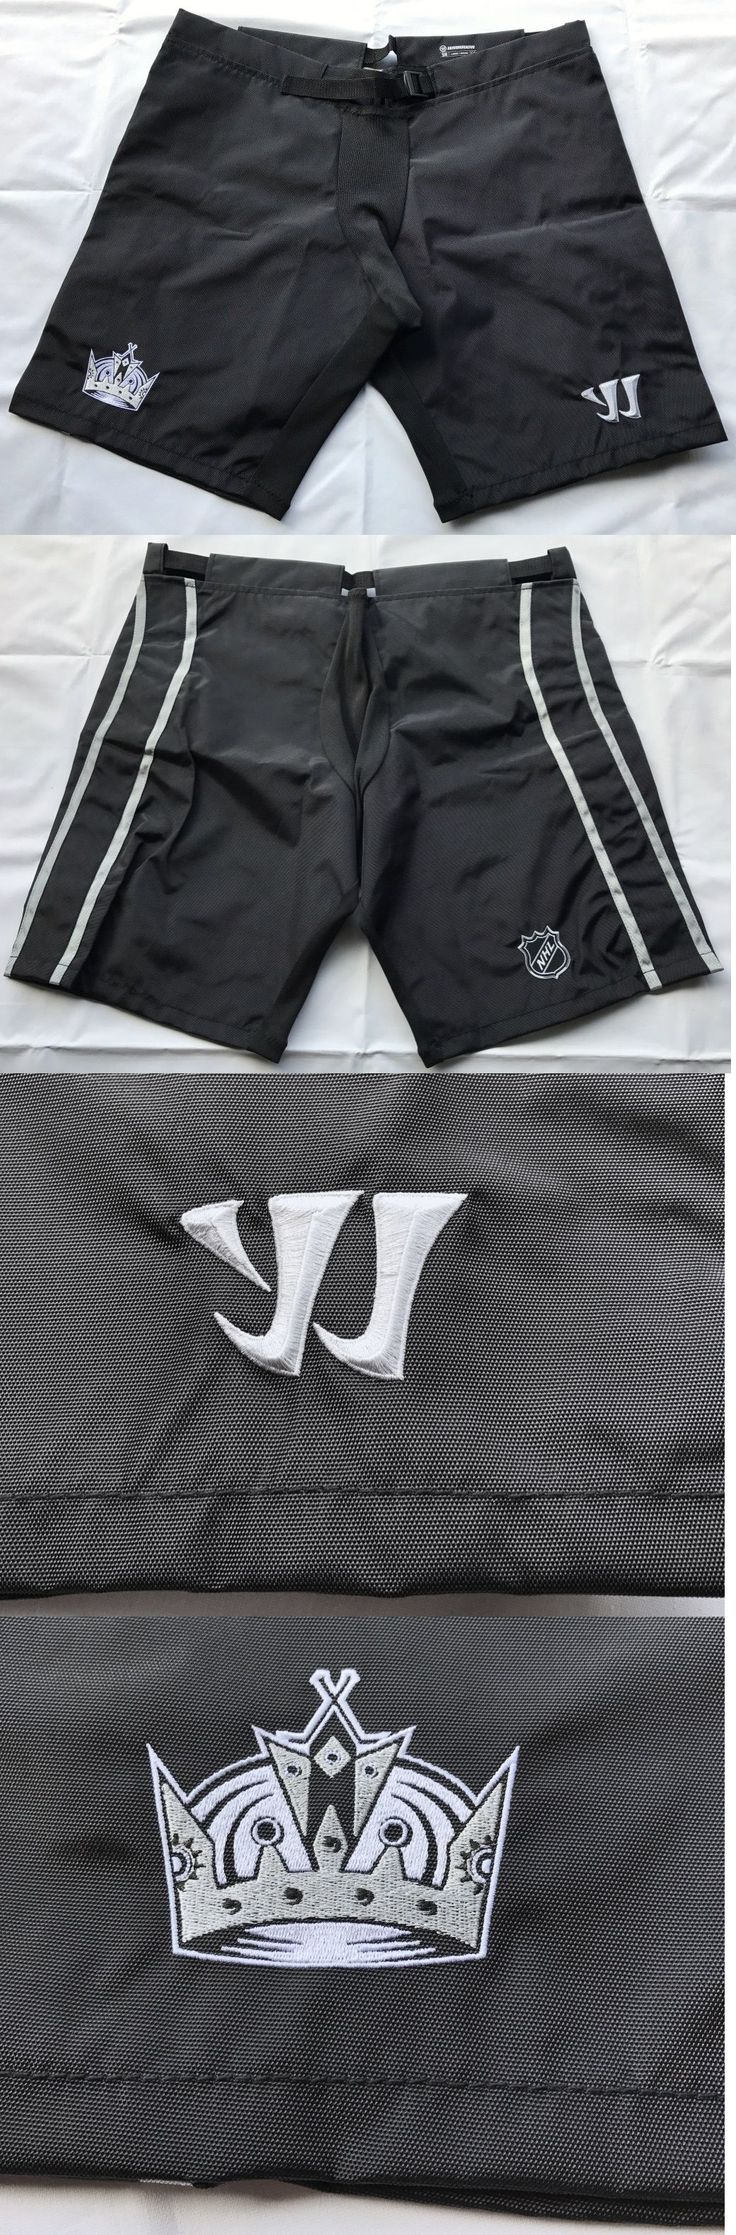 Pads and Guards 20856: New Pro Stock Los Angeles Kings Warrior Dynasty Hockey Pant Shell - Large -> BUY IT NOW ONLY: $80 on eBay!